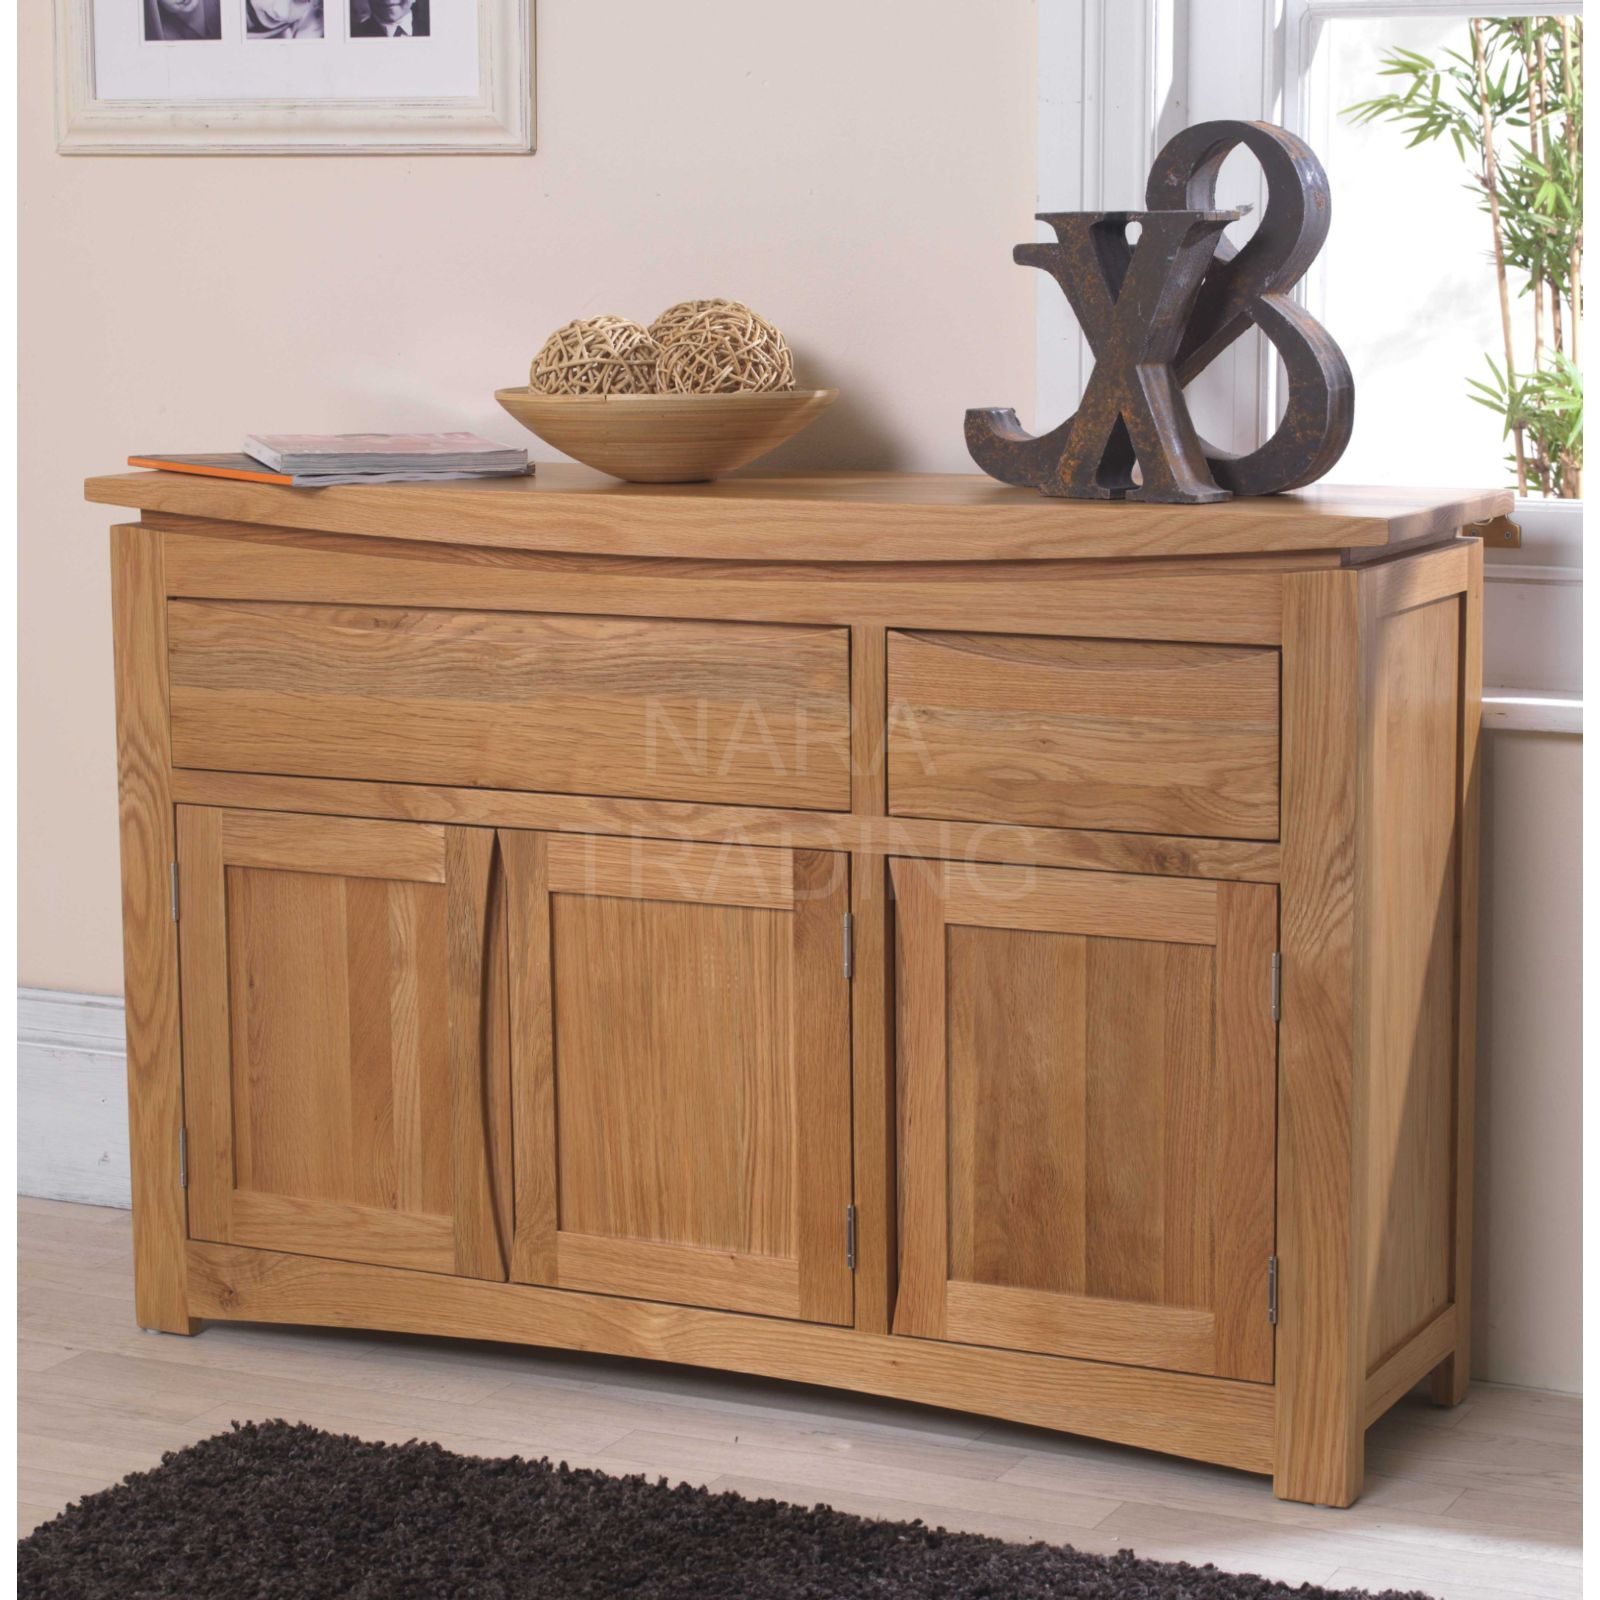 Solid Oak Dining Room Furniture ~ Crescent solid oak dining room furniture three door two